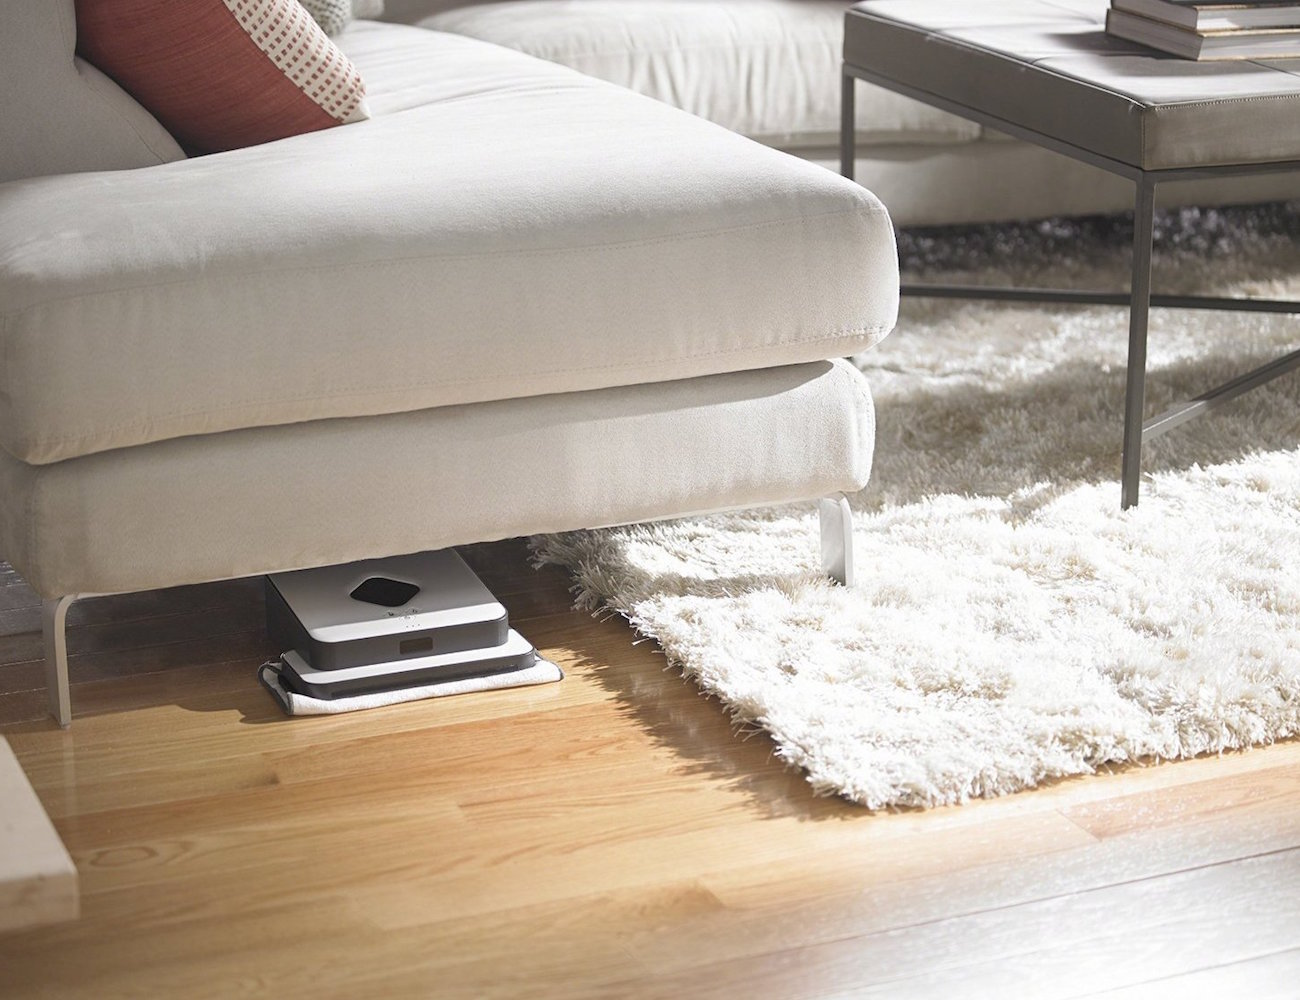 iRobot Braava 320 – Super Efficient Floor Mopping Robot